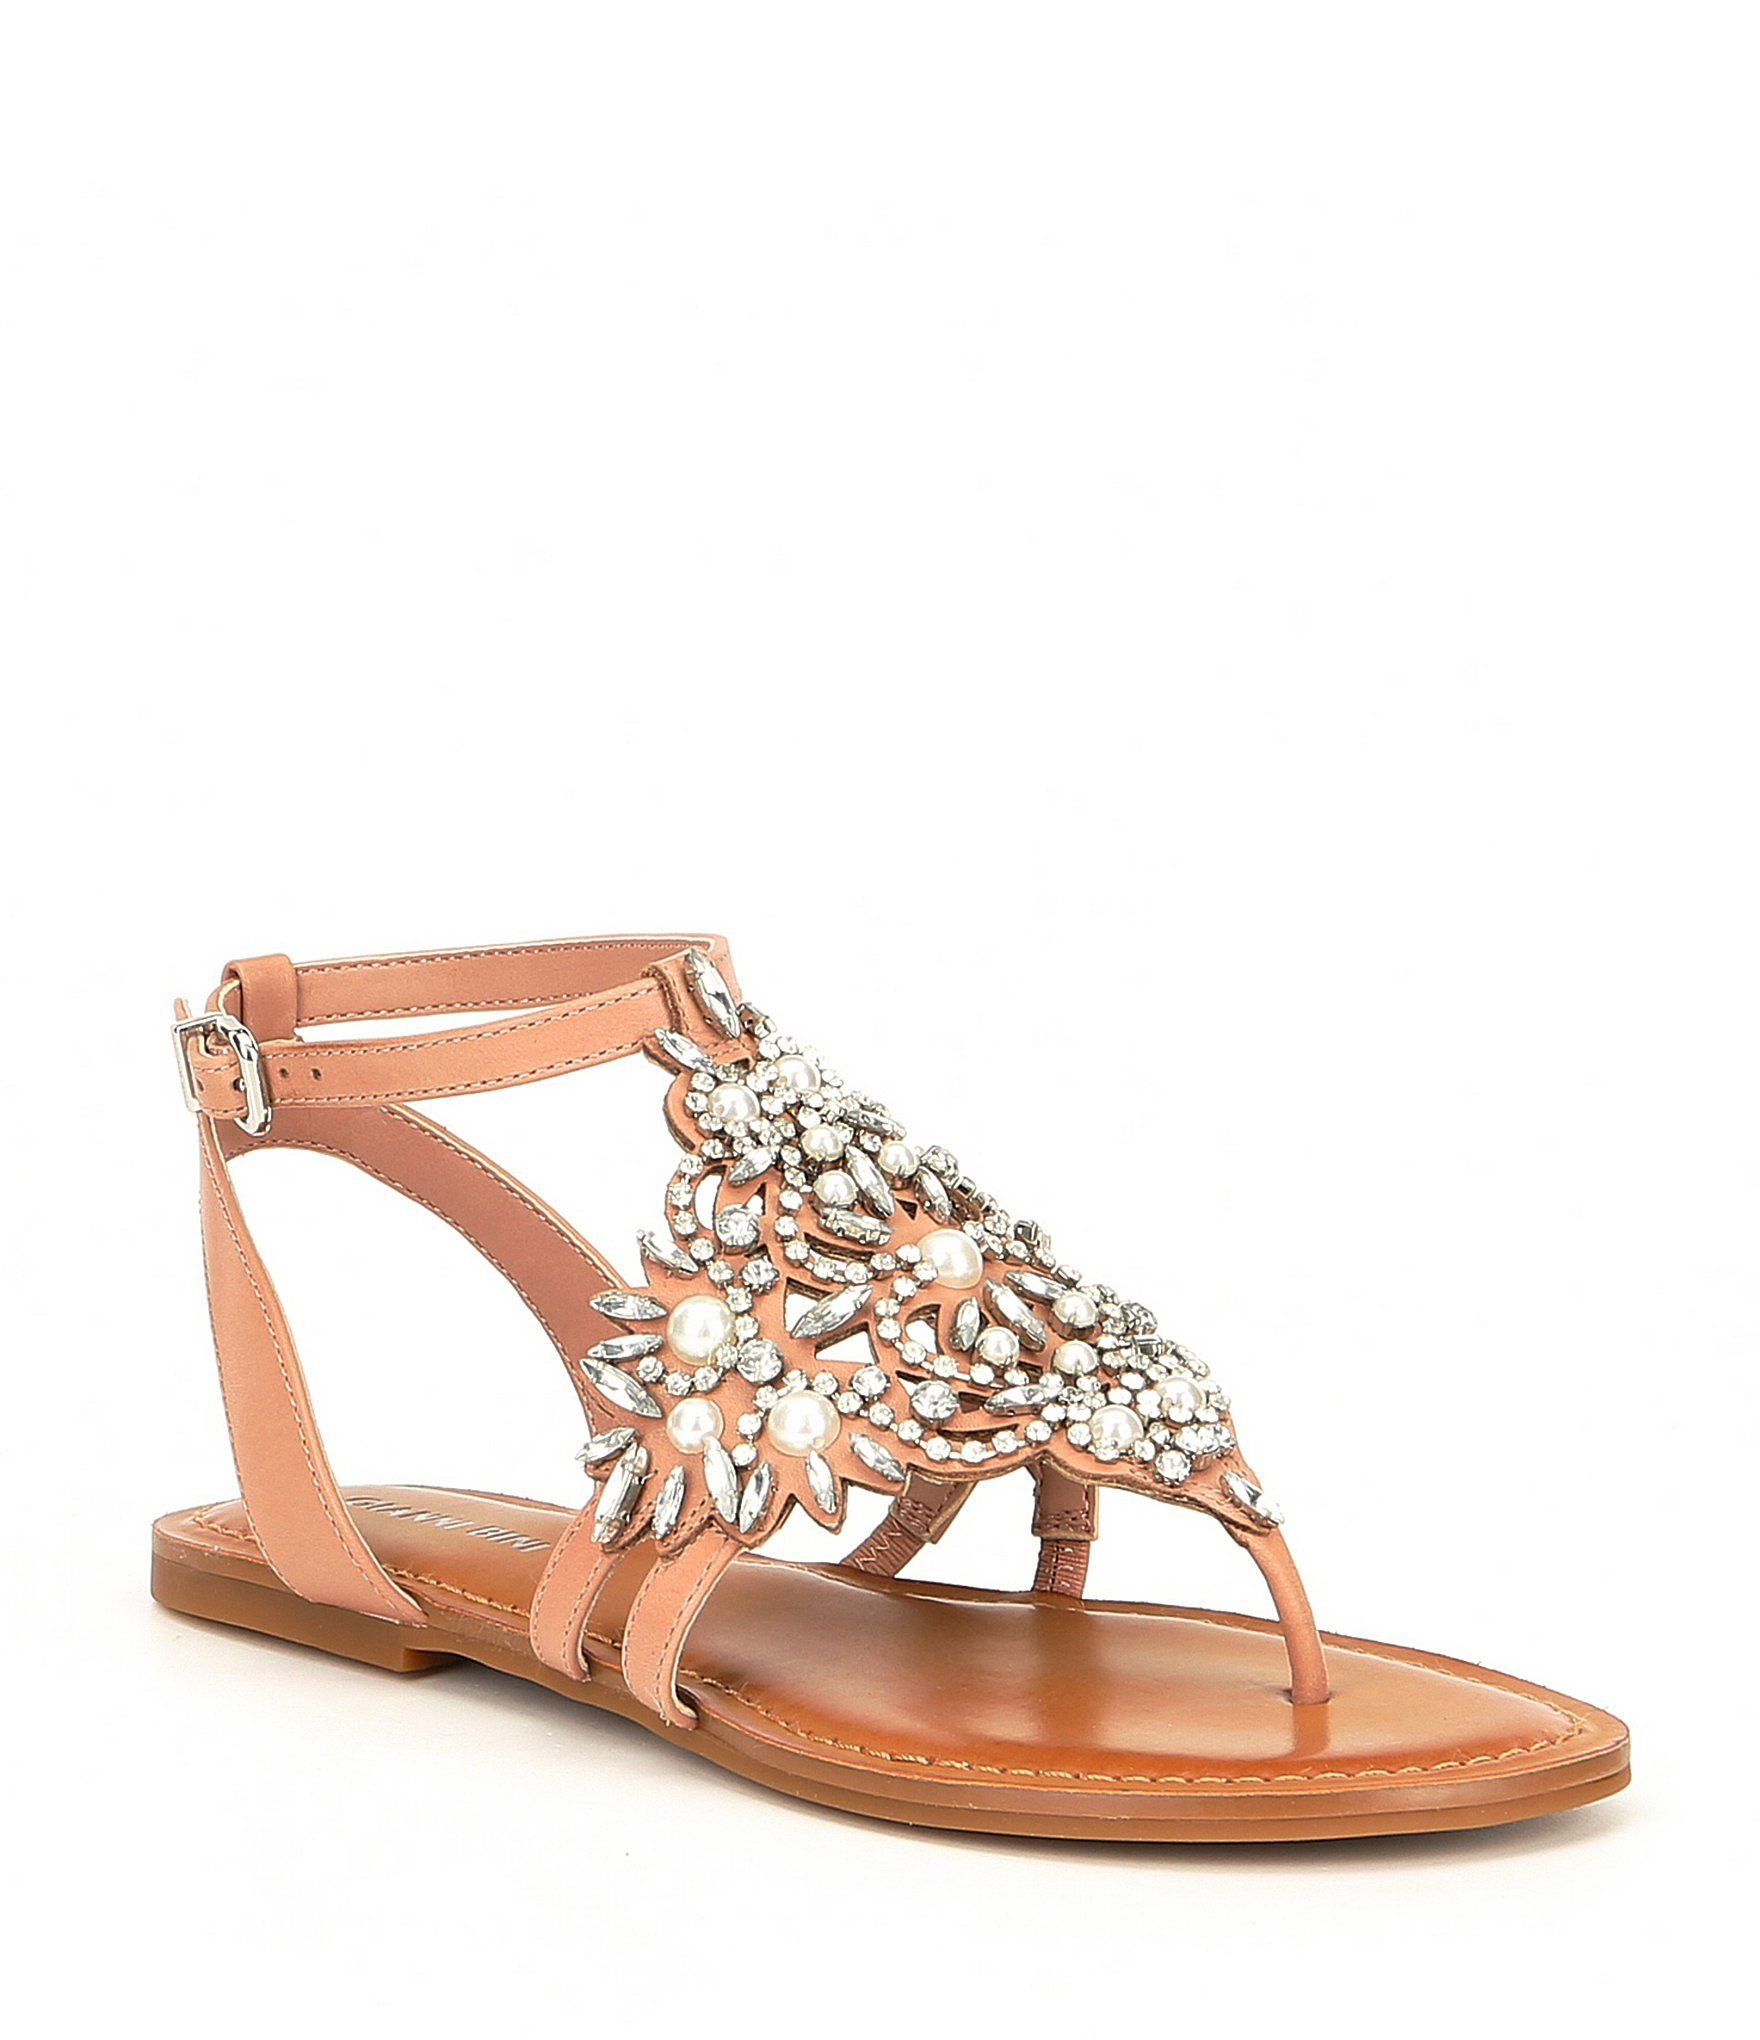 0dfc91a64e9f Shop for Gianni Bini Oliviana Jeweled Pearl Detail Flat Sandals at  Dillards.com. Visit Dillards.com to find clothing